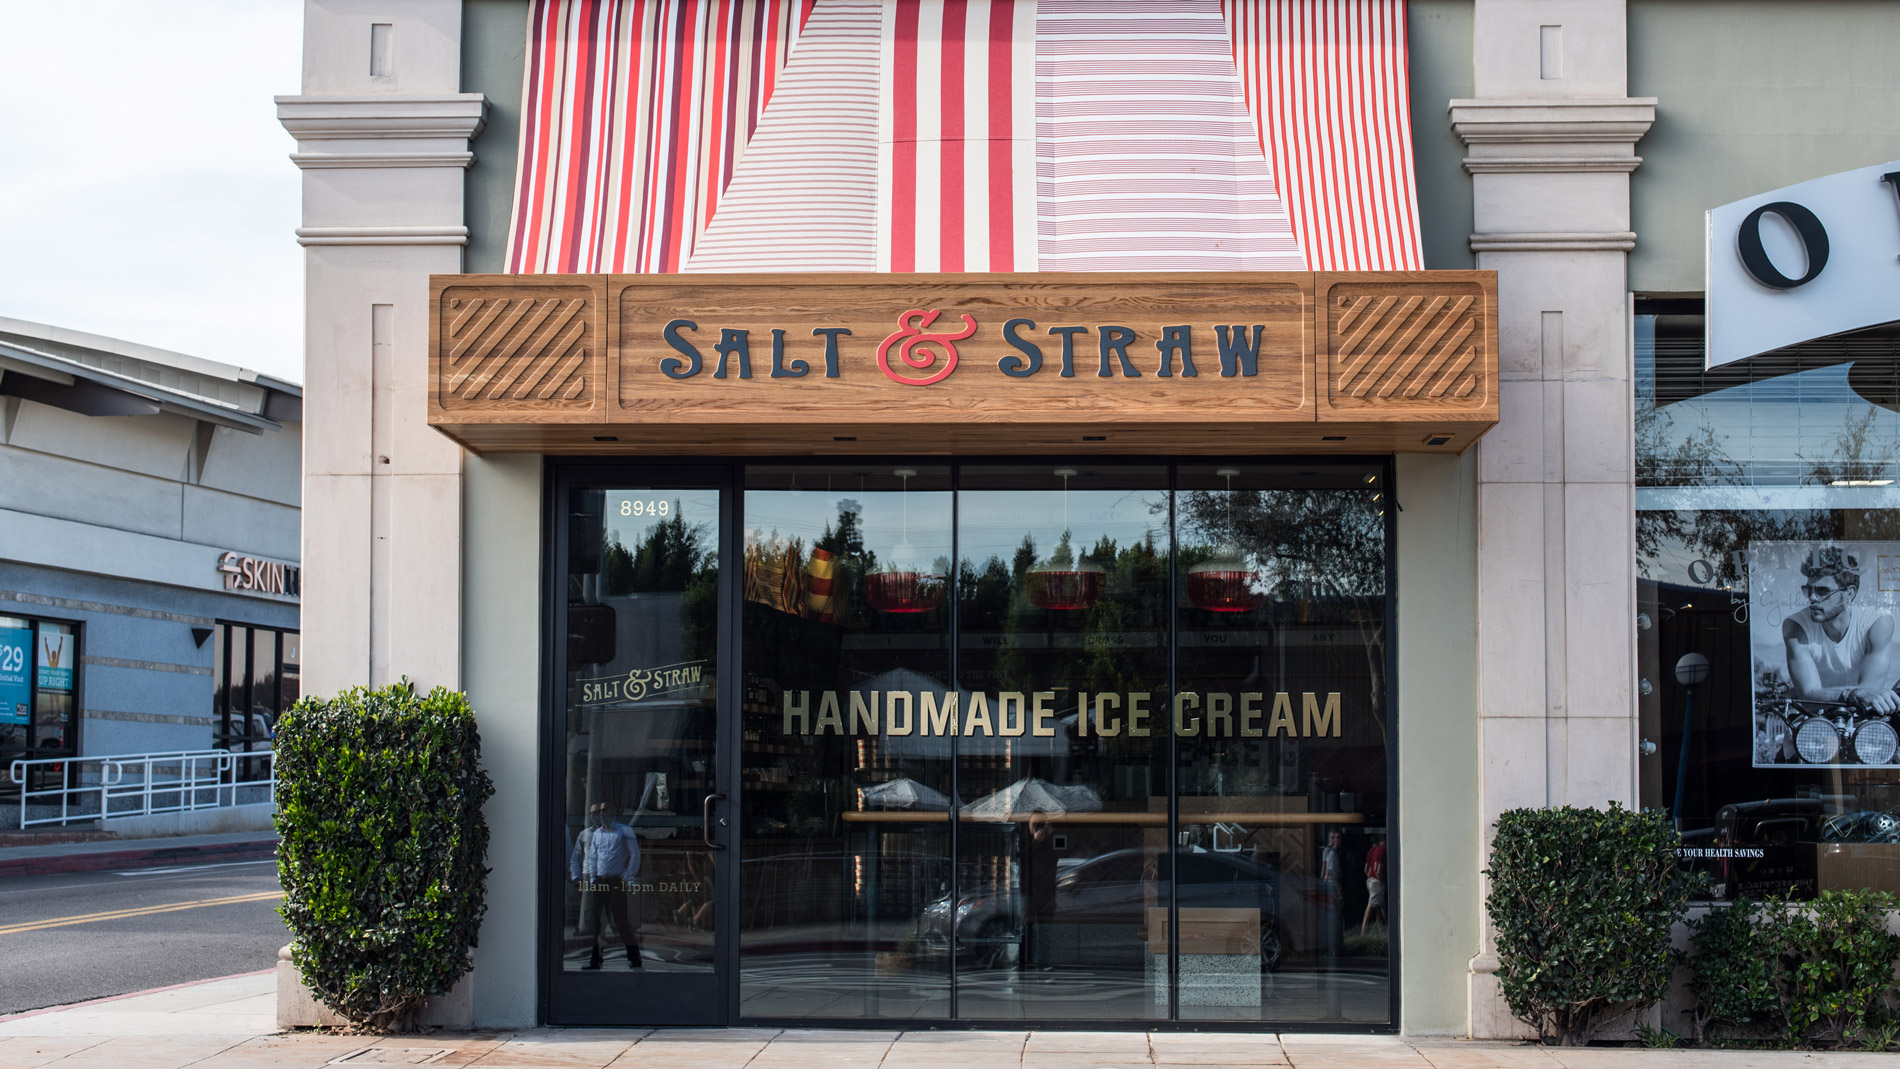 Salt & Straw, Las Angeles